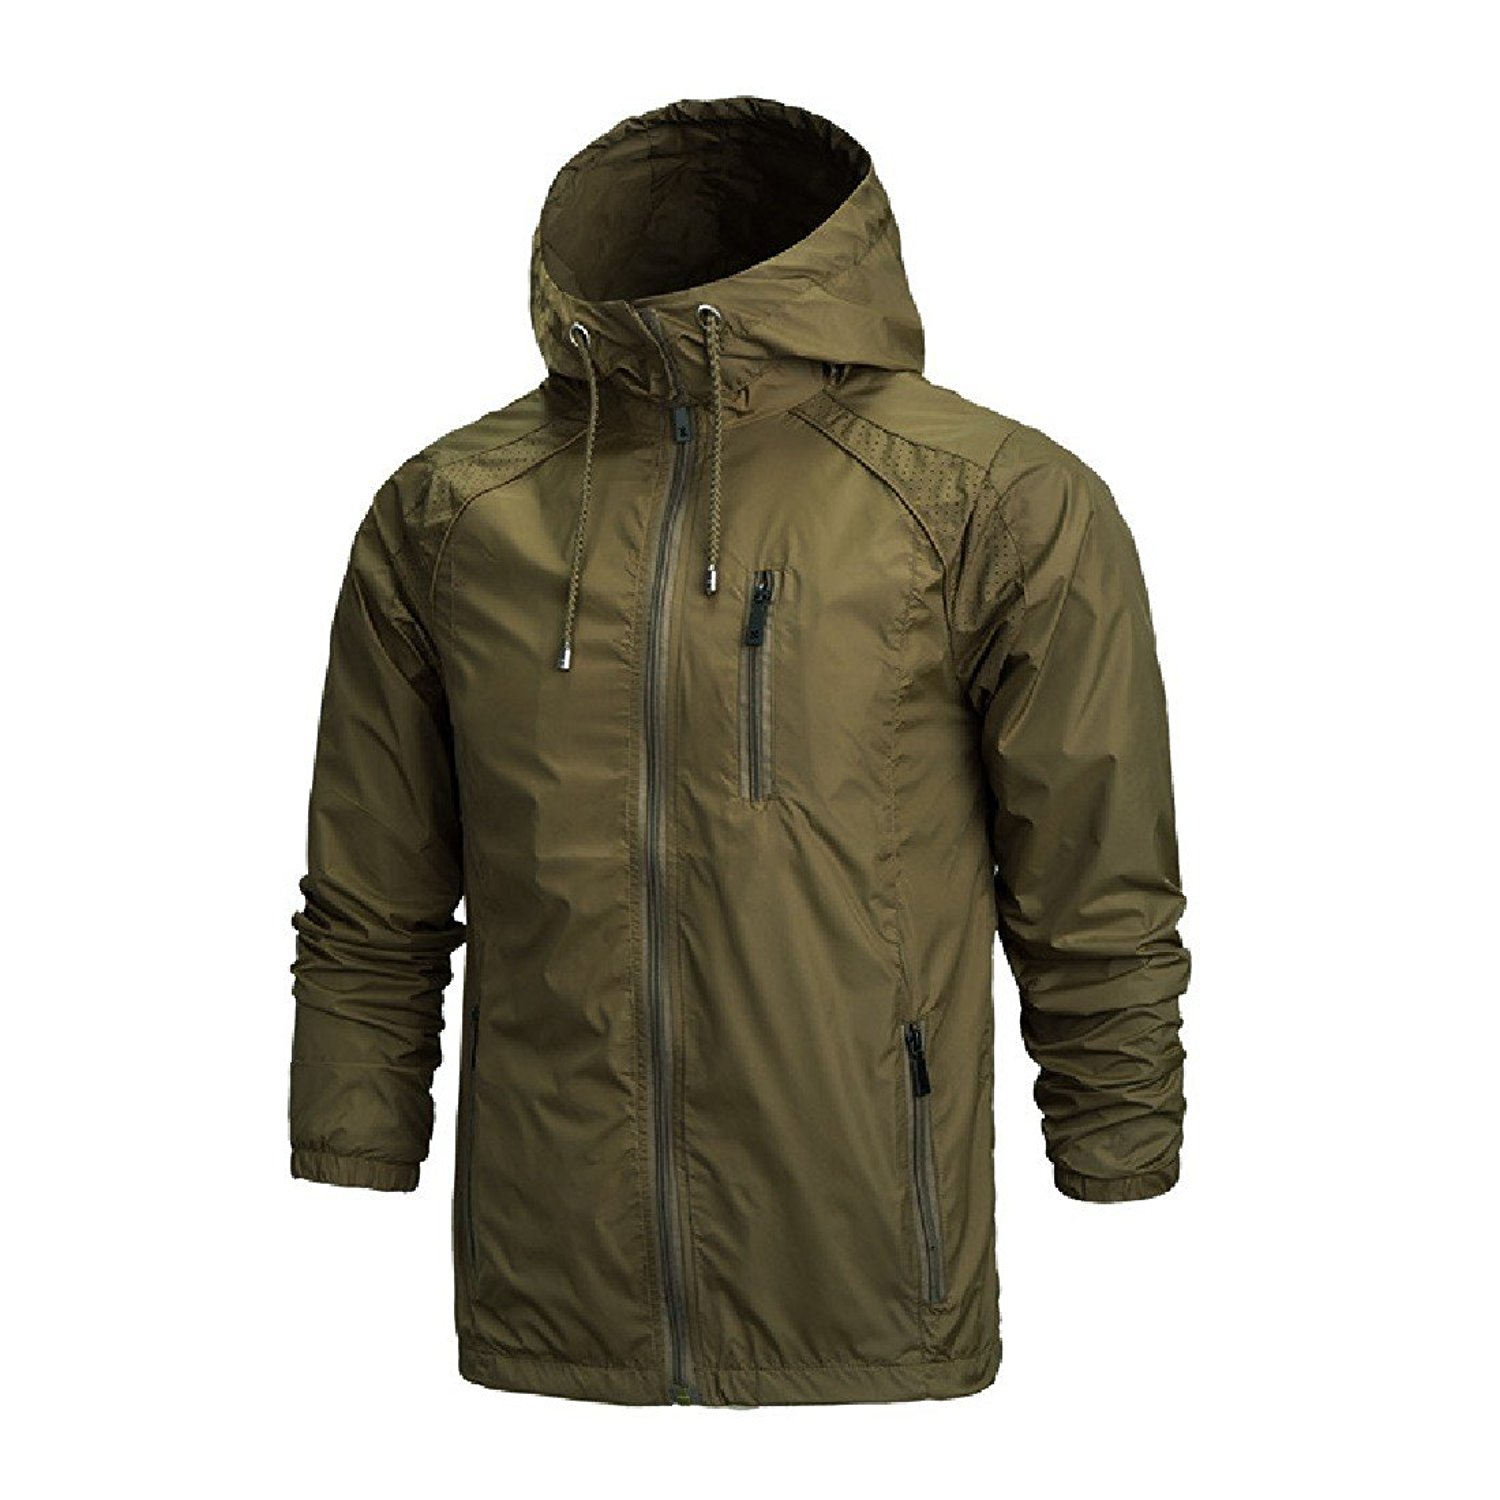 Zimaes-Men Fashion Sports Outdoor Hooded Double-Layer Leisure Leisure Sports Dust Coat Jacket